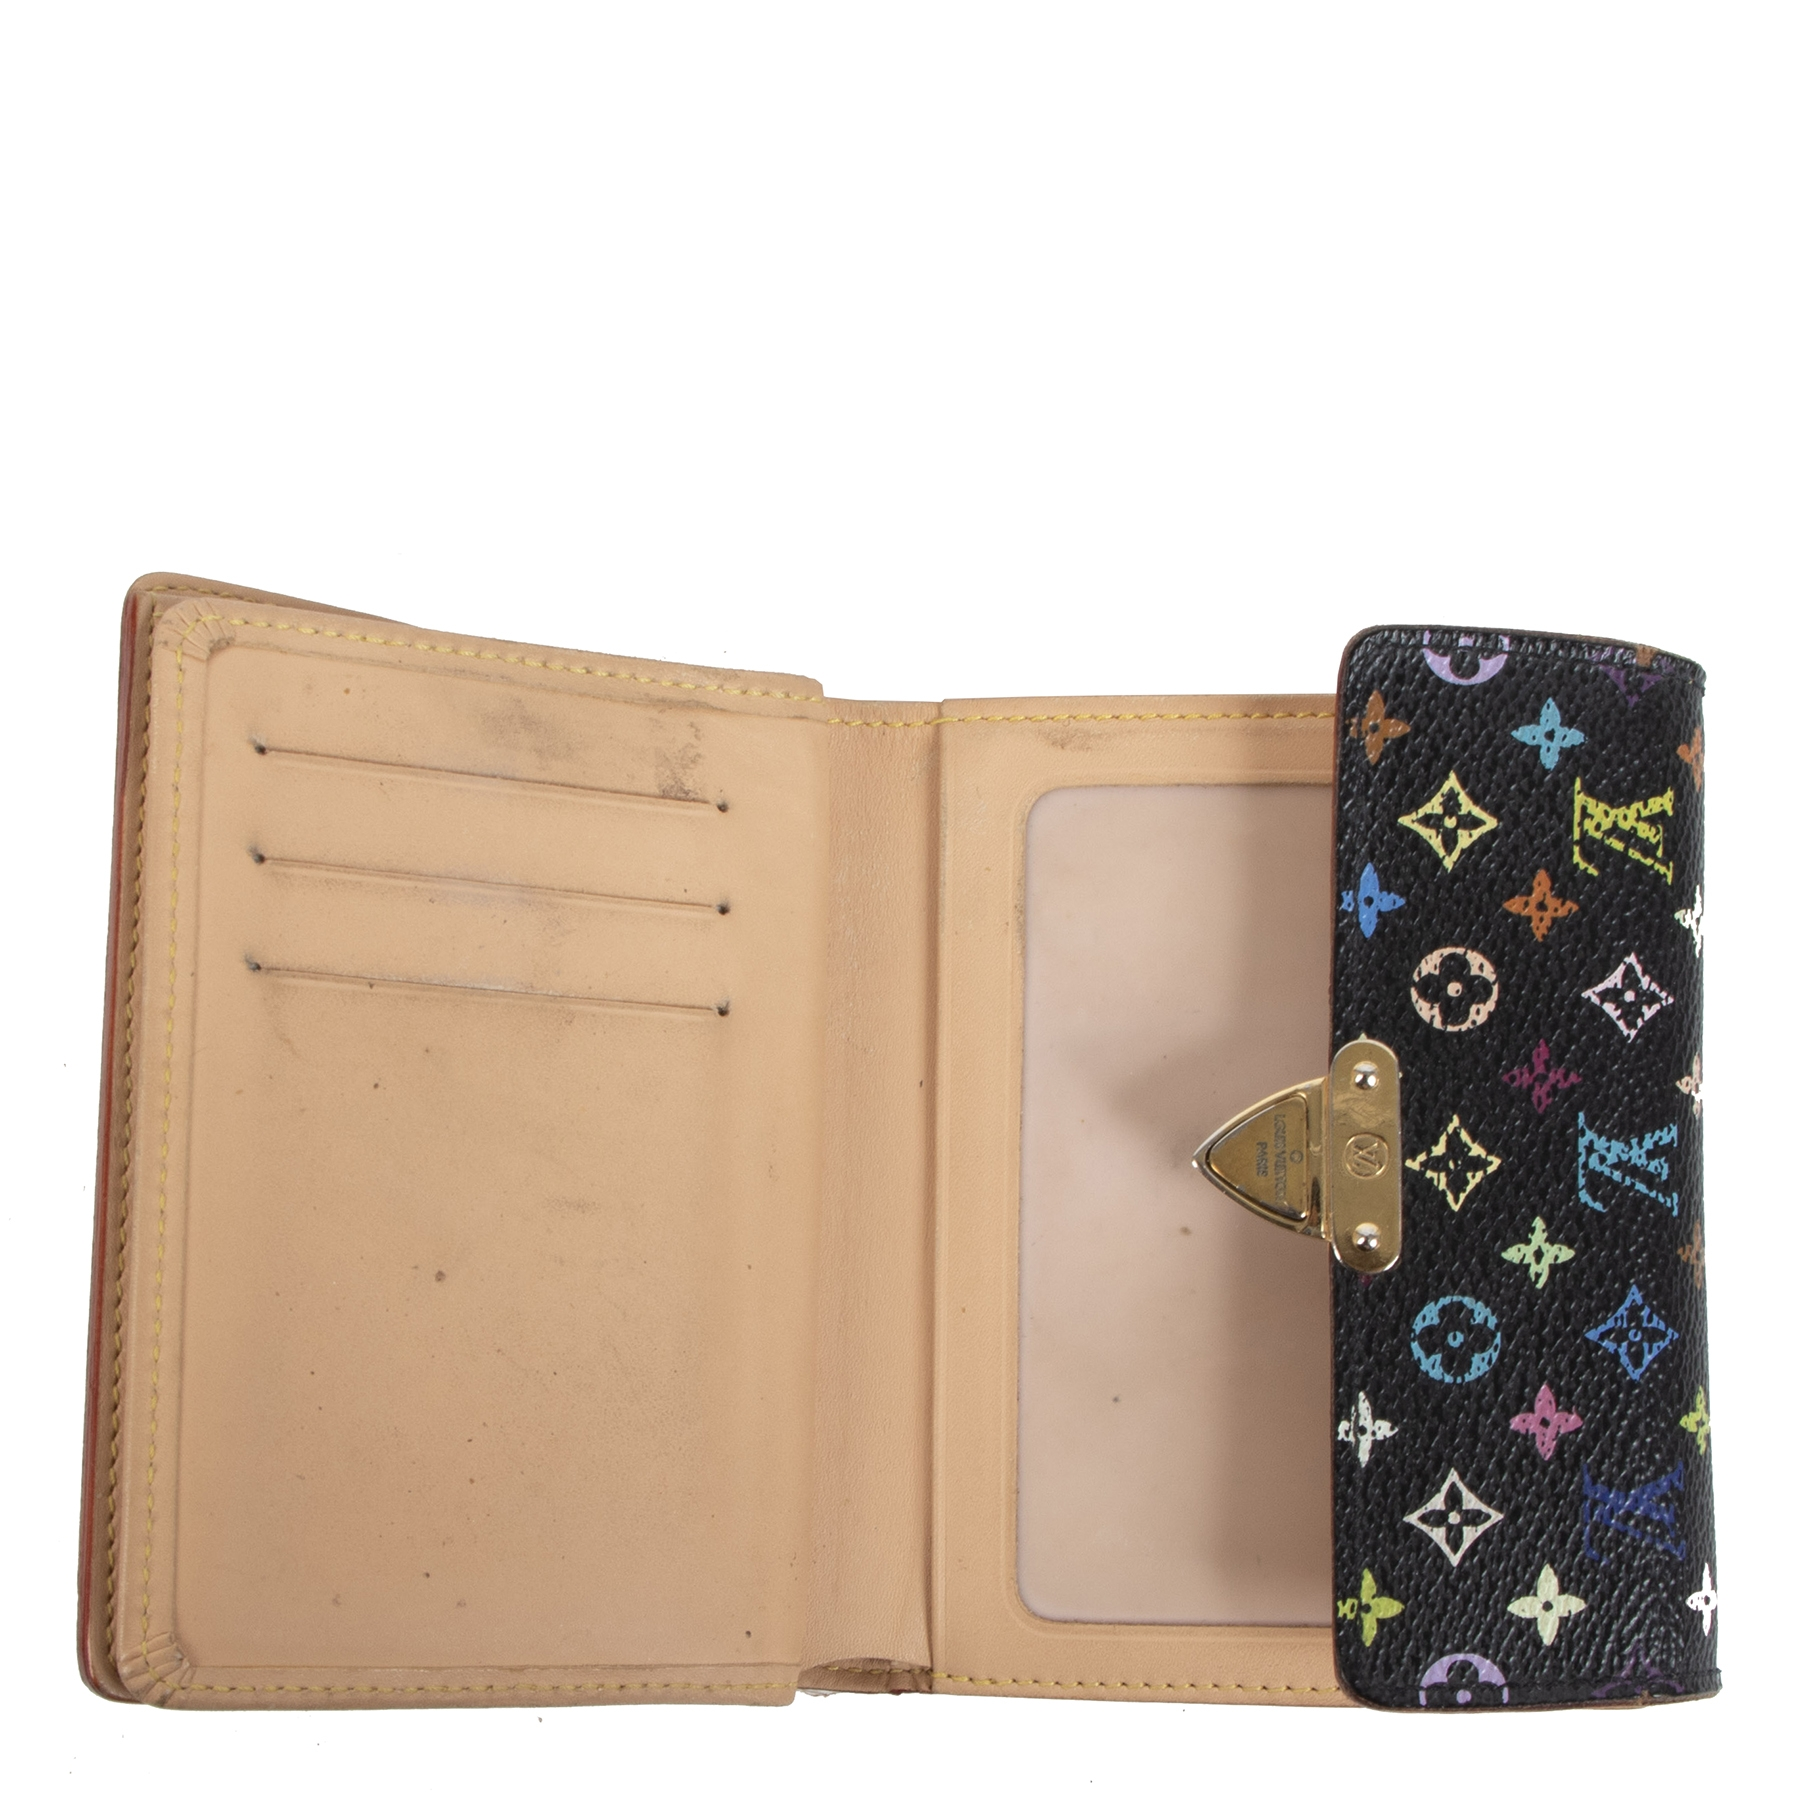 Authentique seconde main vintage Louis Vuitton Multicolor Koala Wallet Black achète en ligne webshop LabelLOV